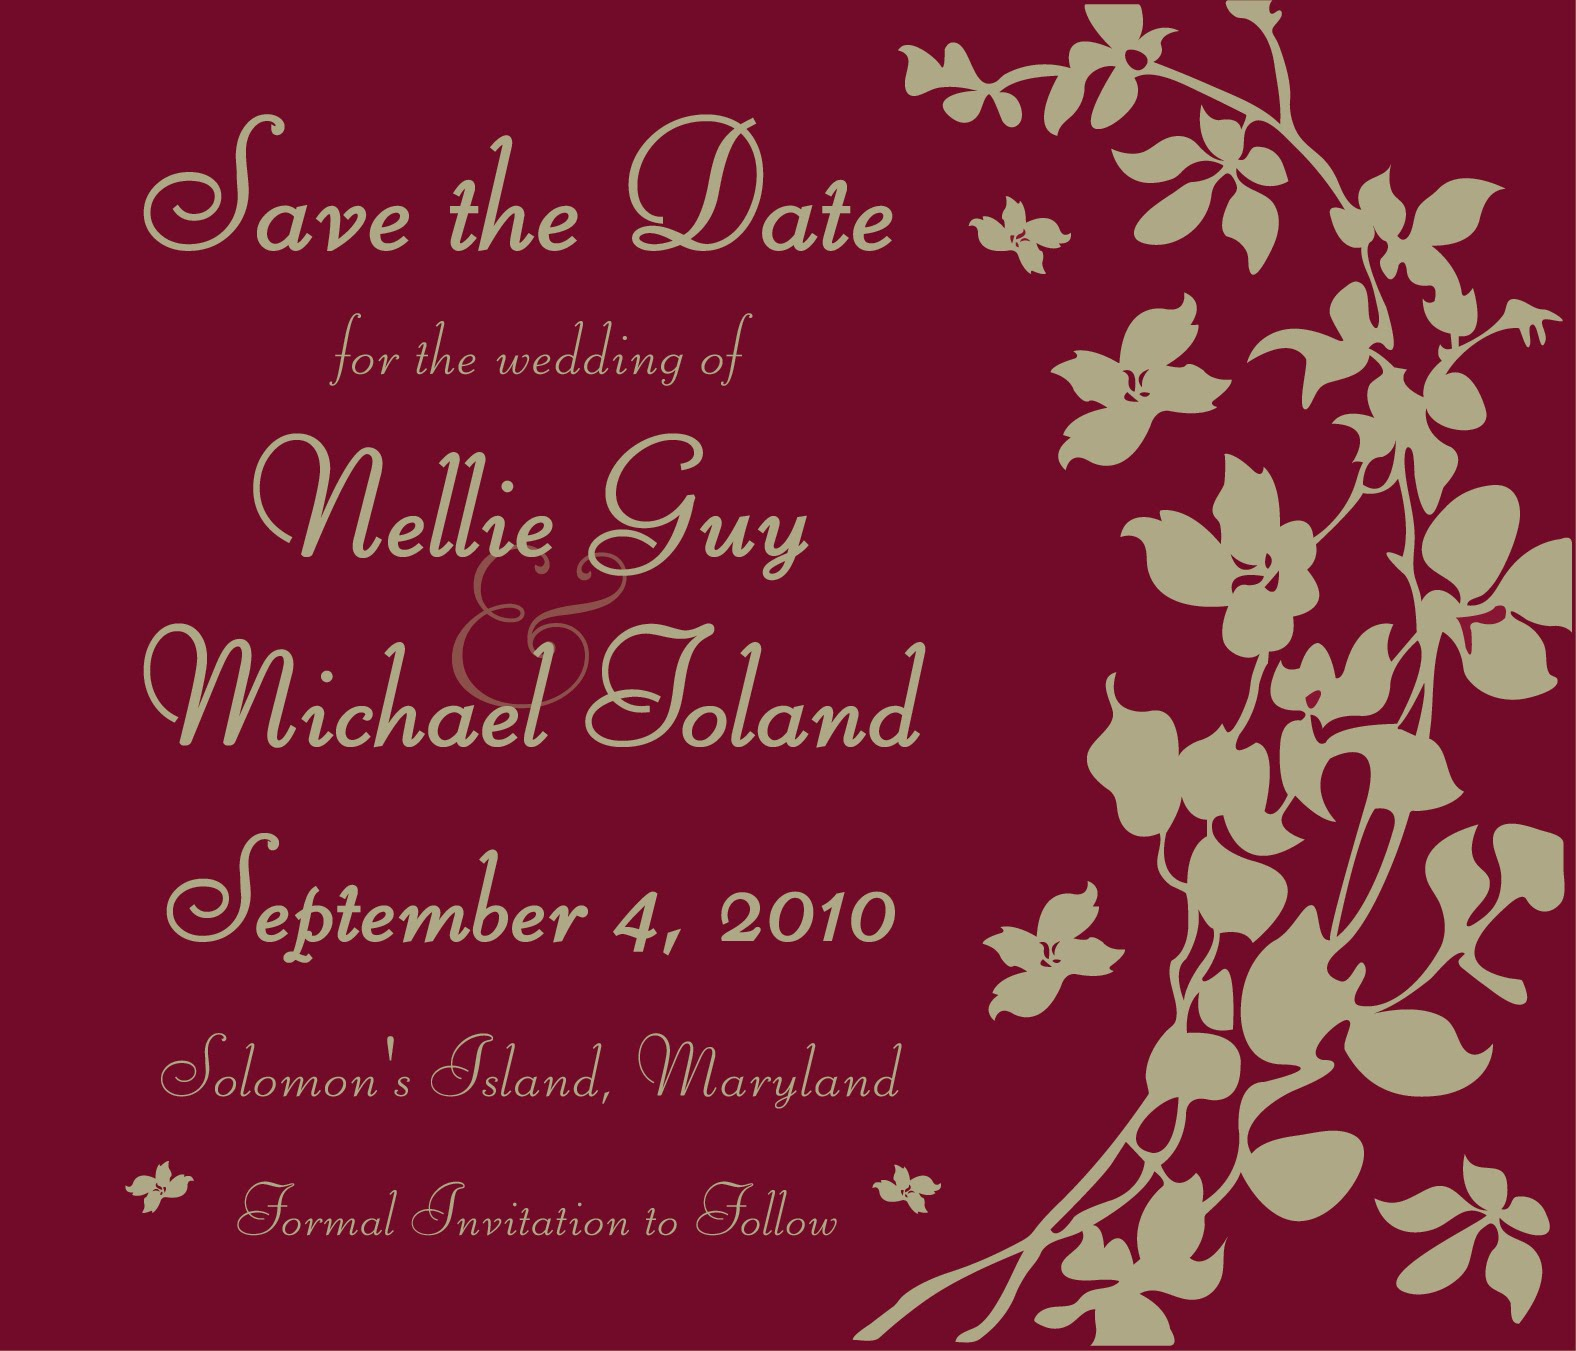 Fall Weddings • Time for Save the Dates! Kindly RSVP Designs Blog